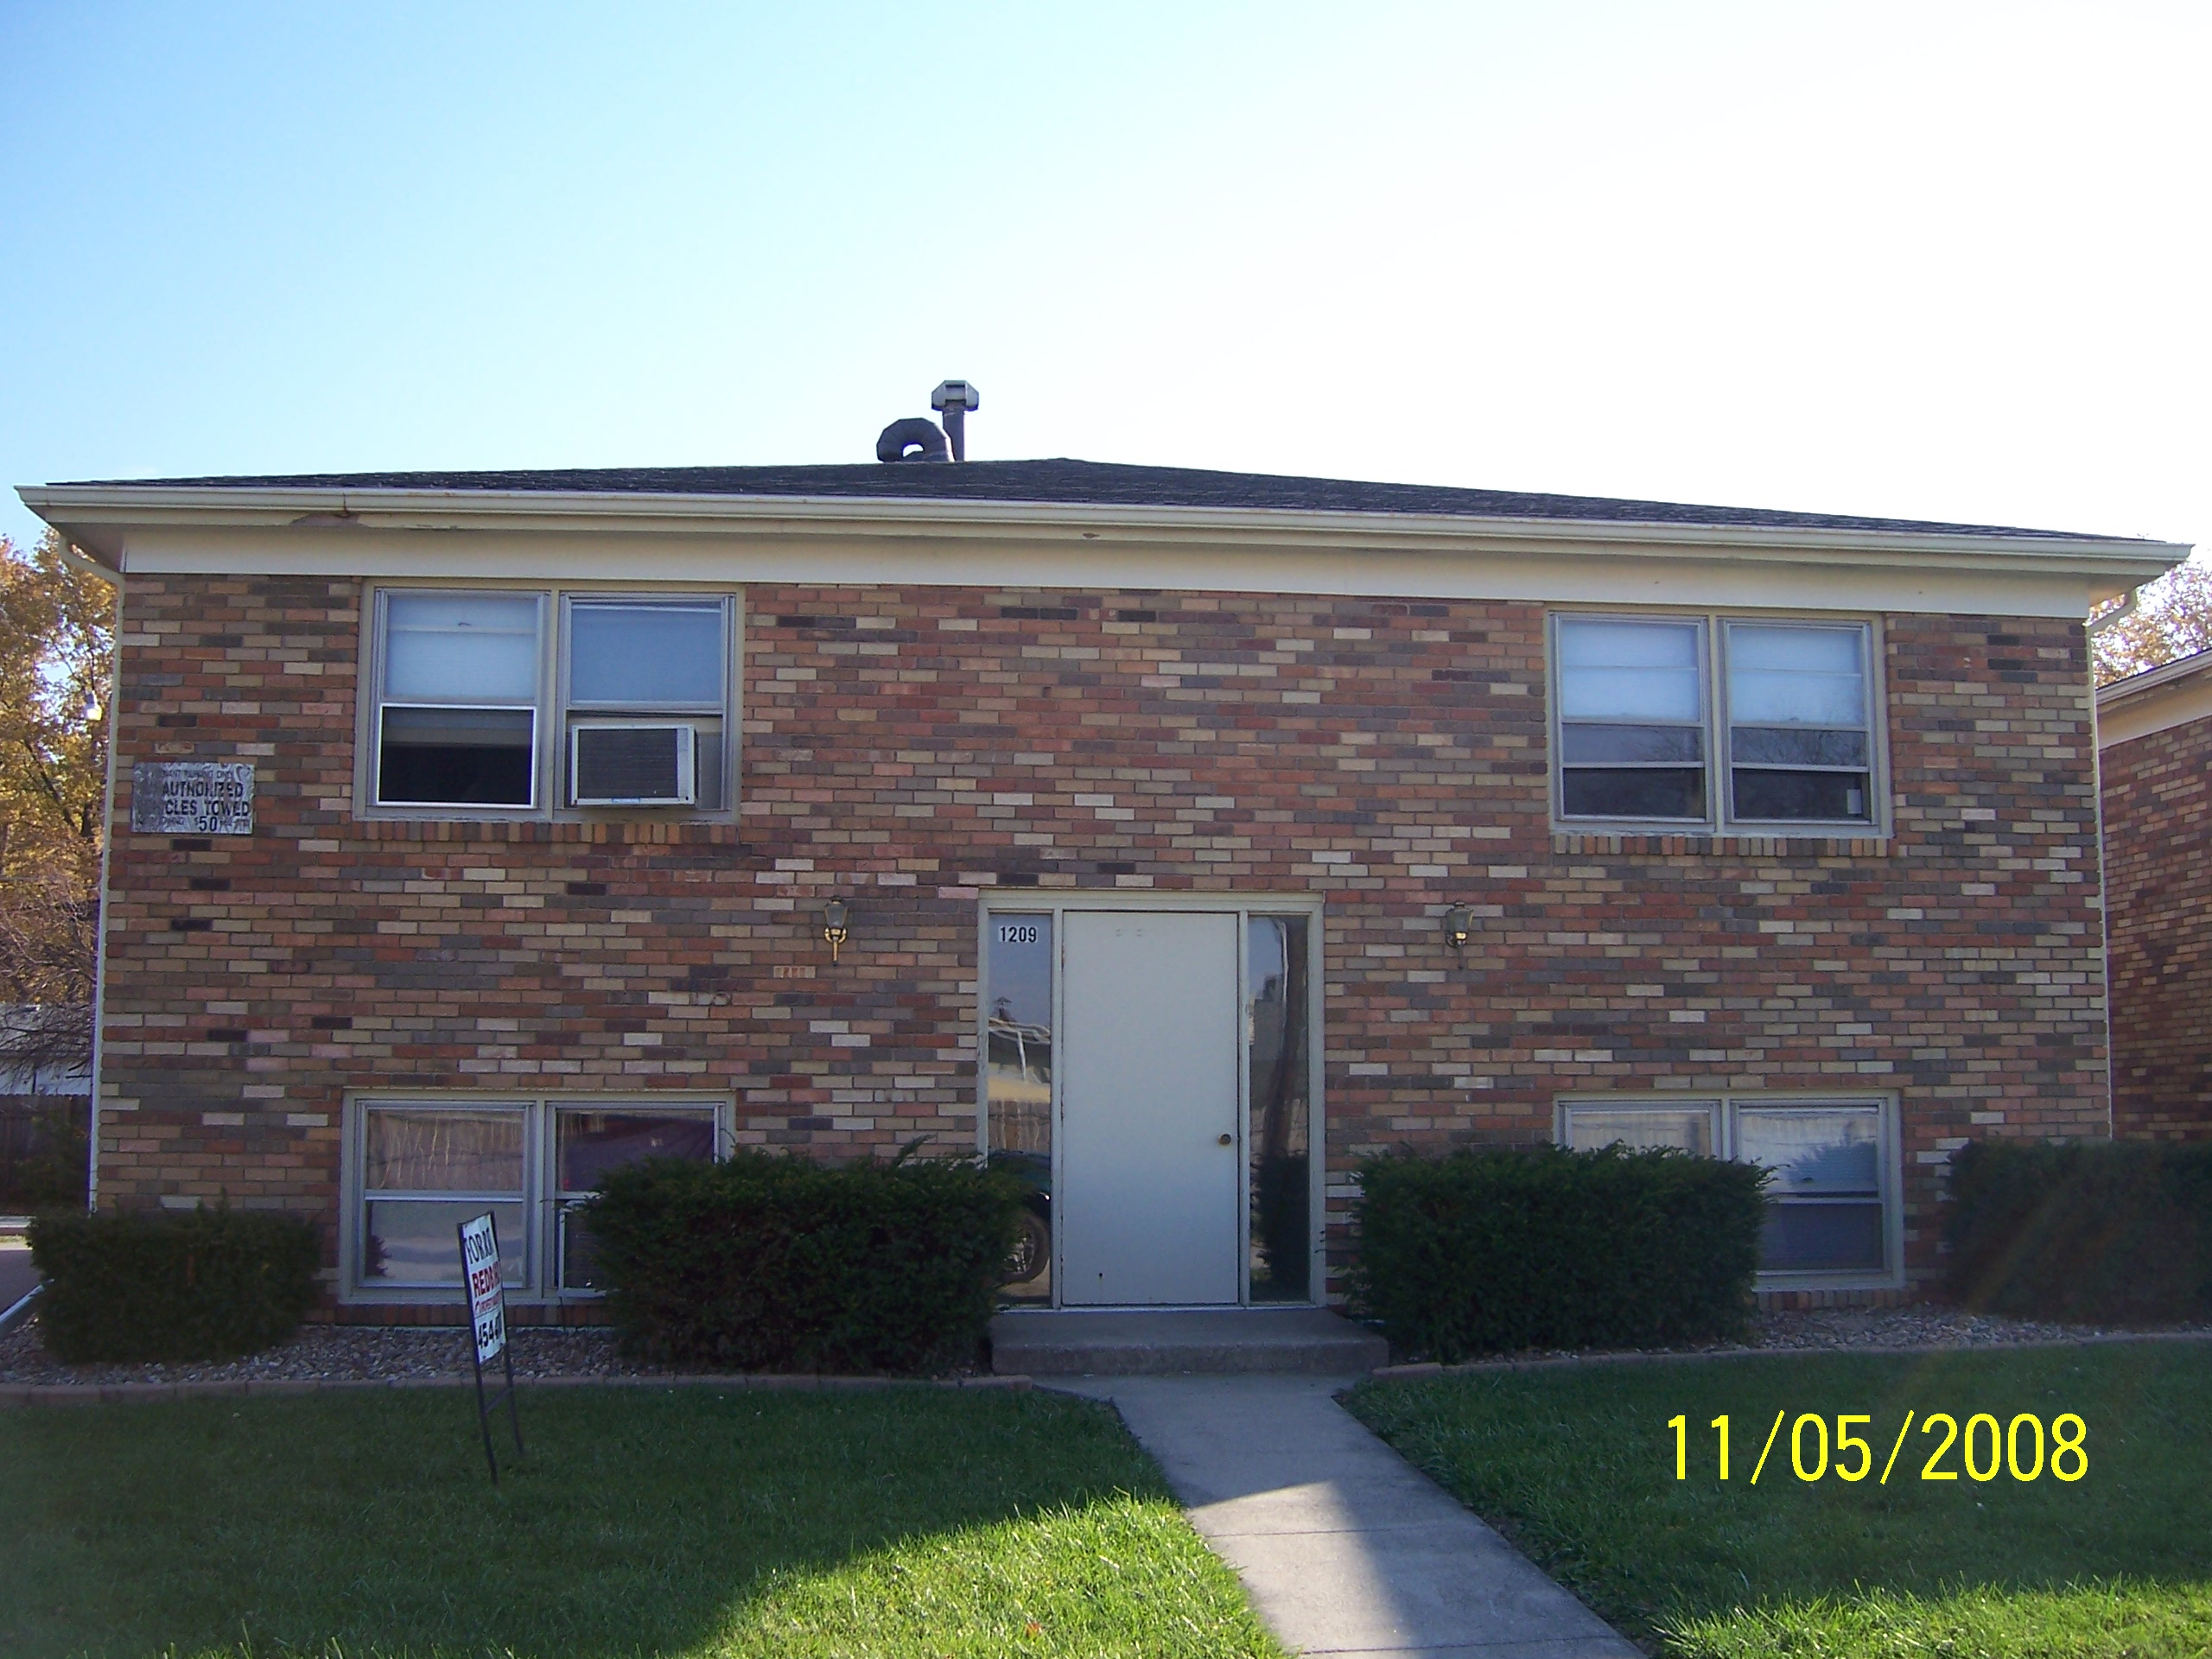 Apartments for One bedroom apartments bloomington il